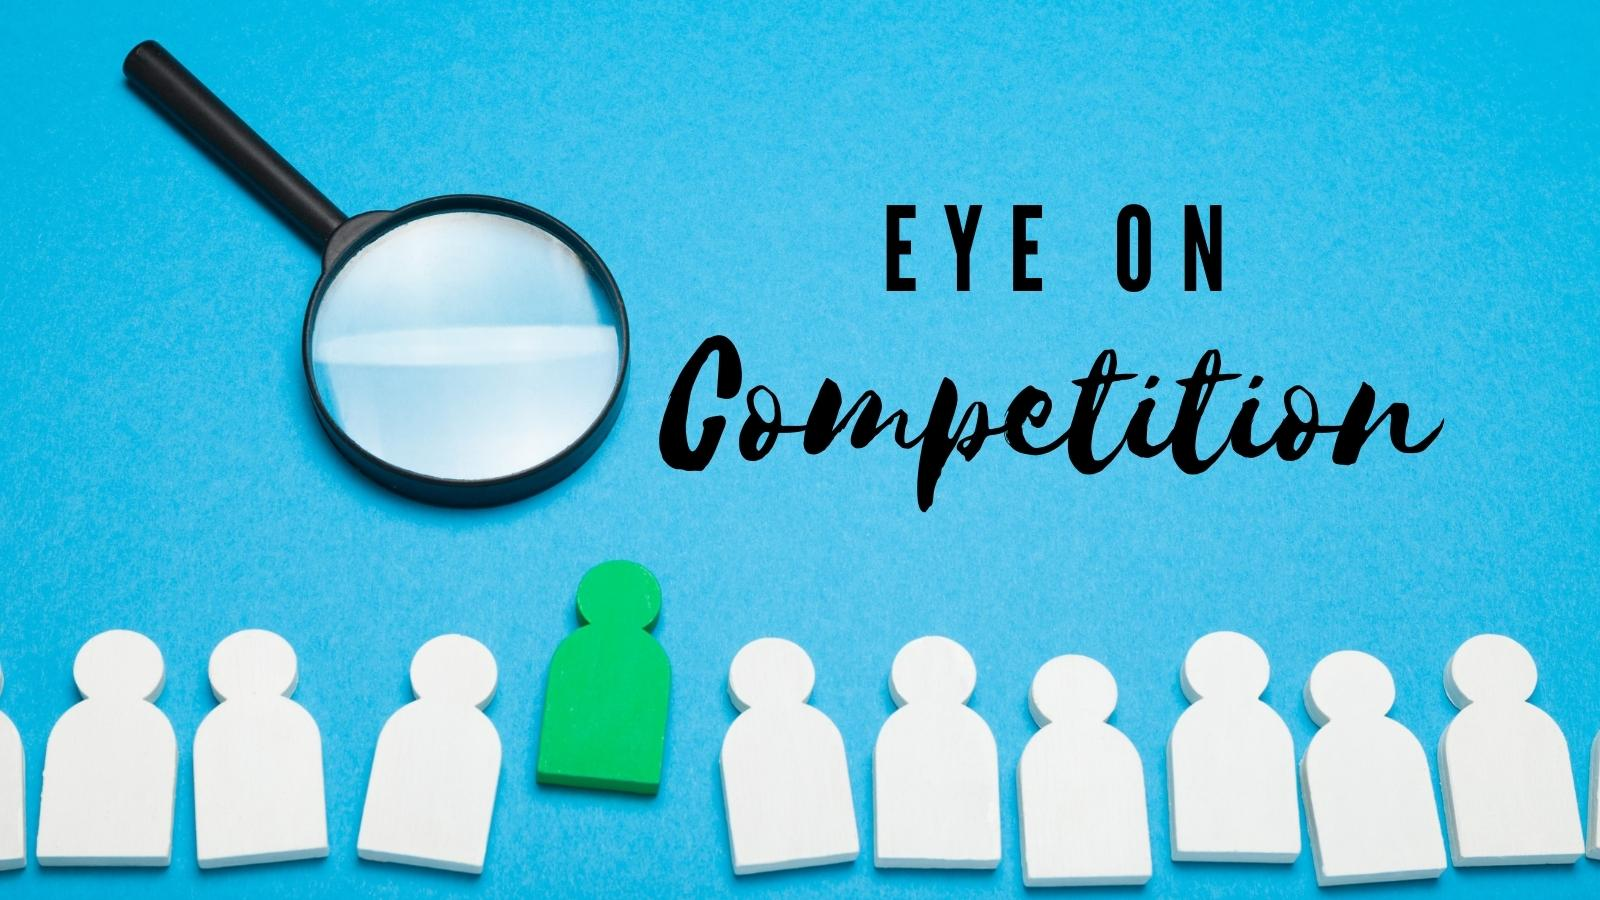 eye on competition